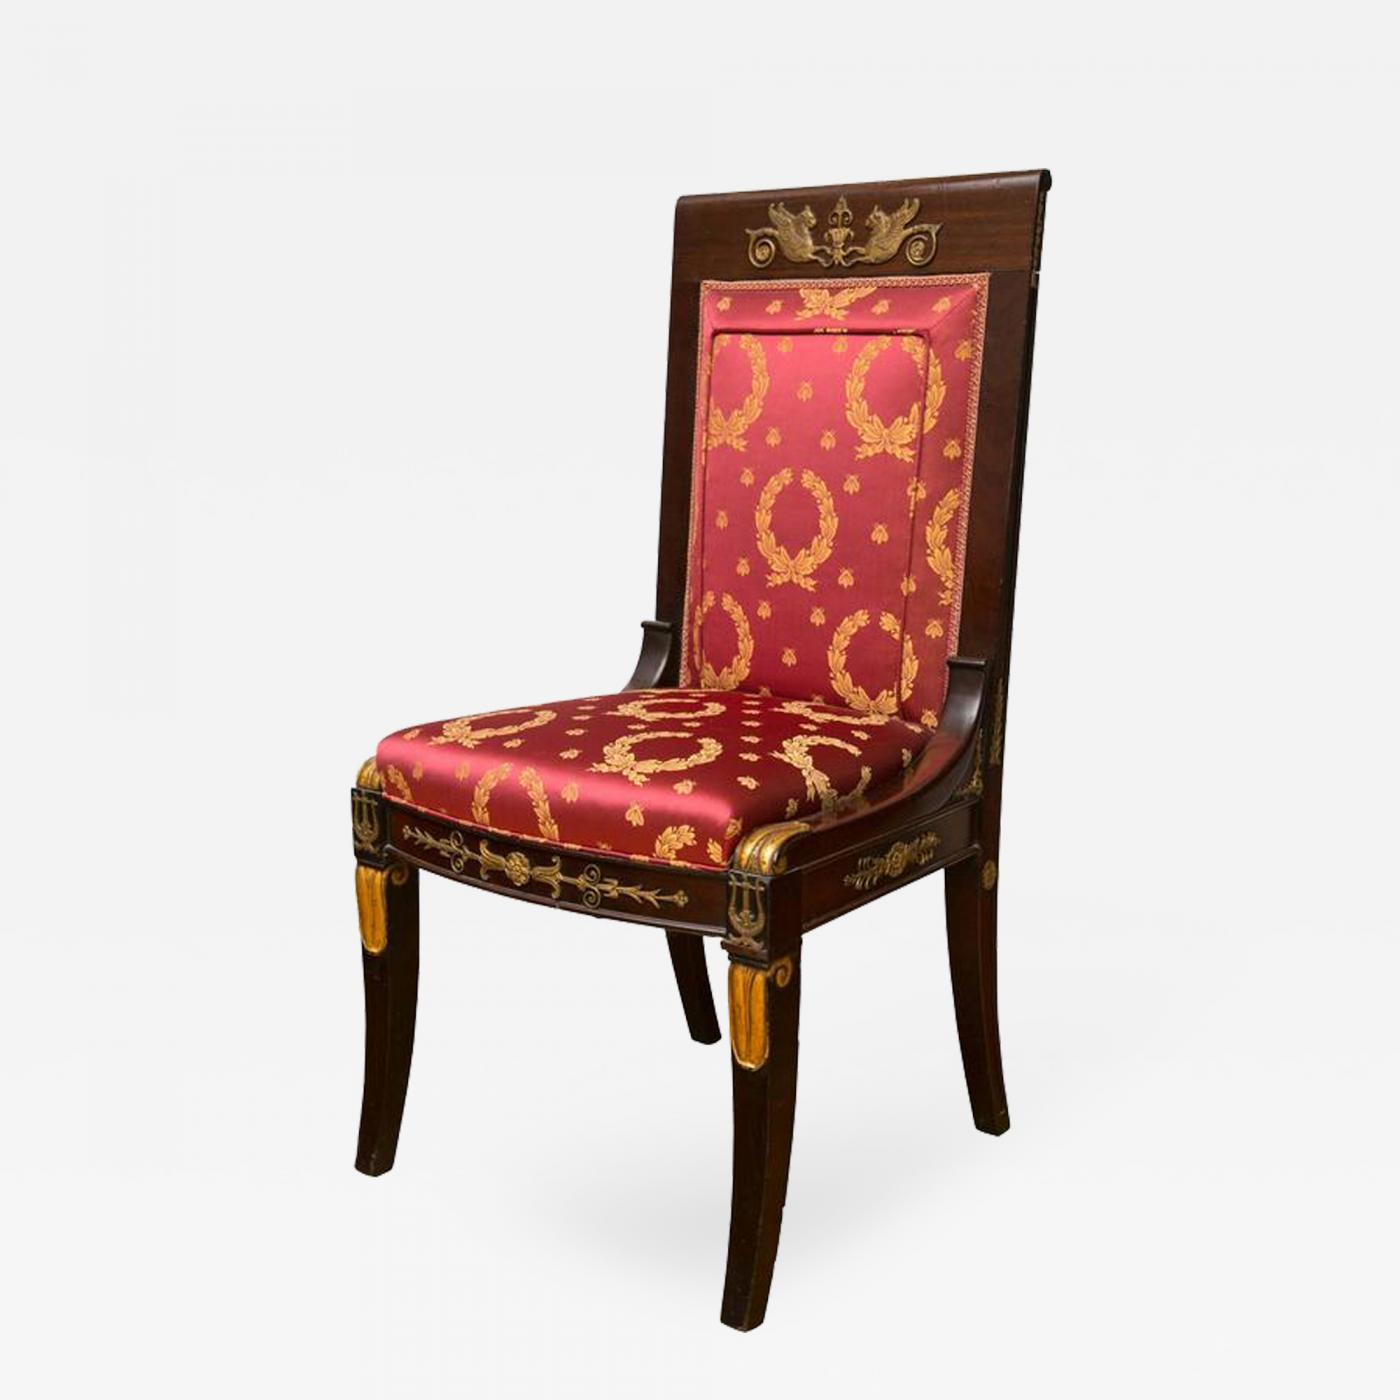 Ordinaire Listings / Furniture / Seating / Side Chairs